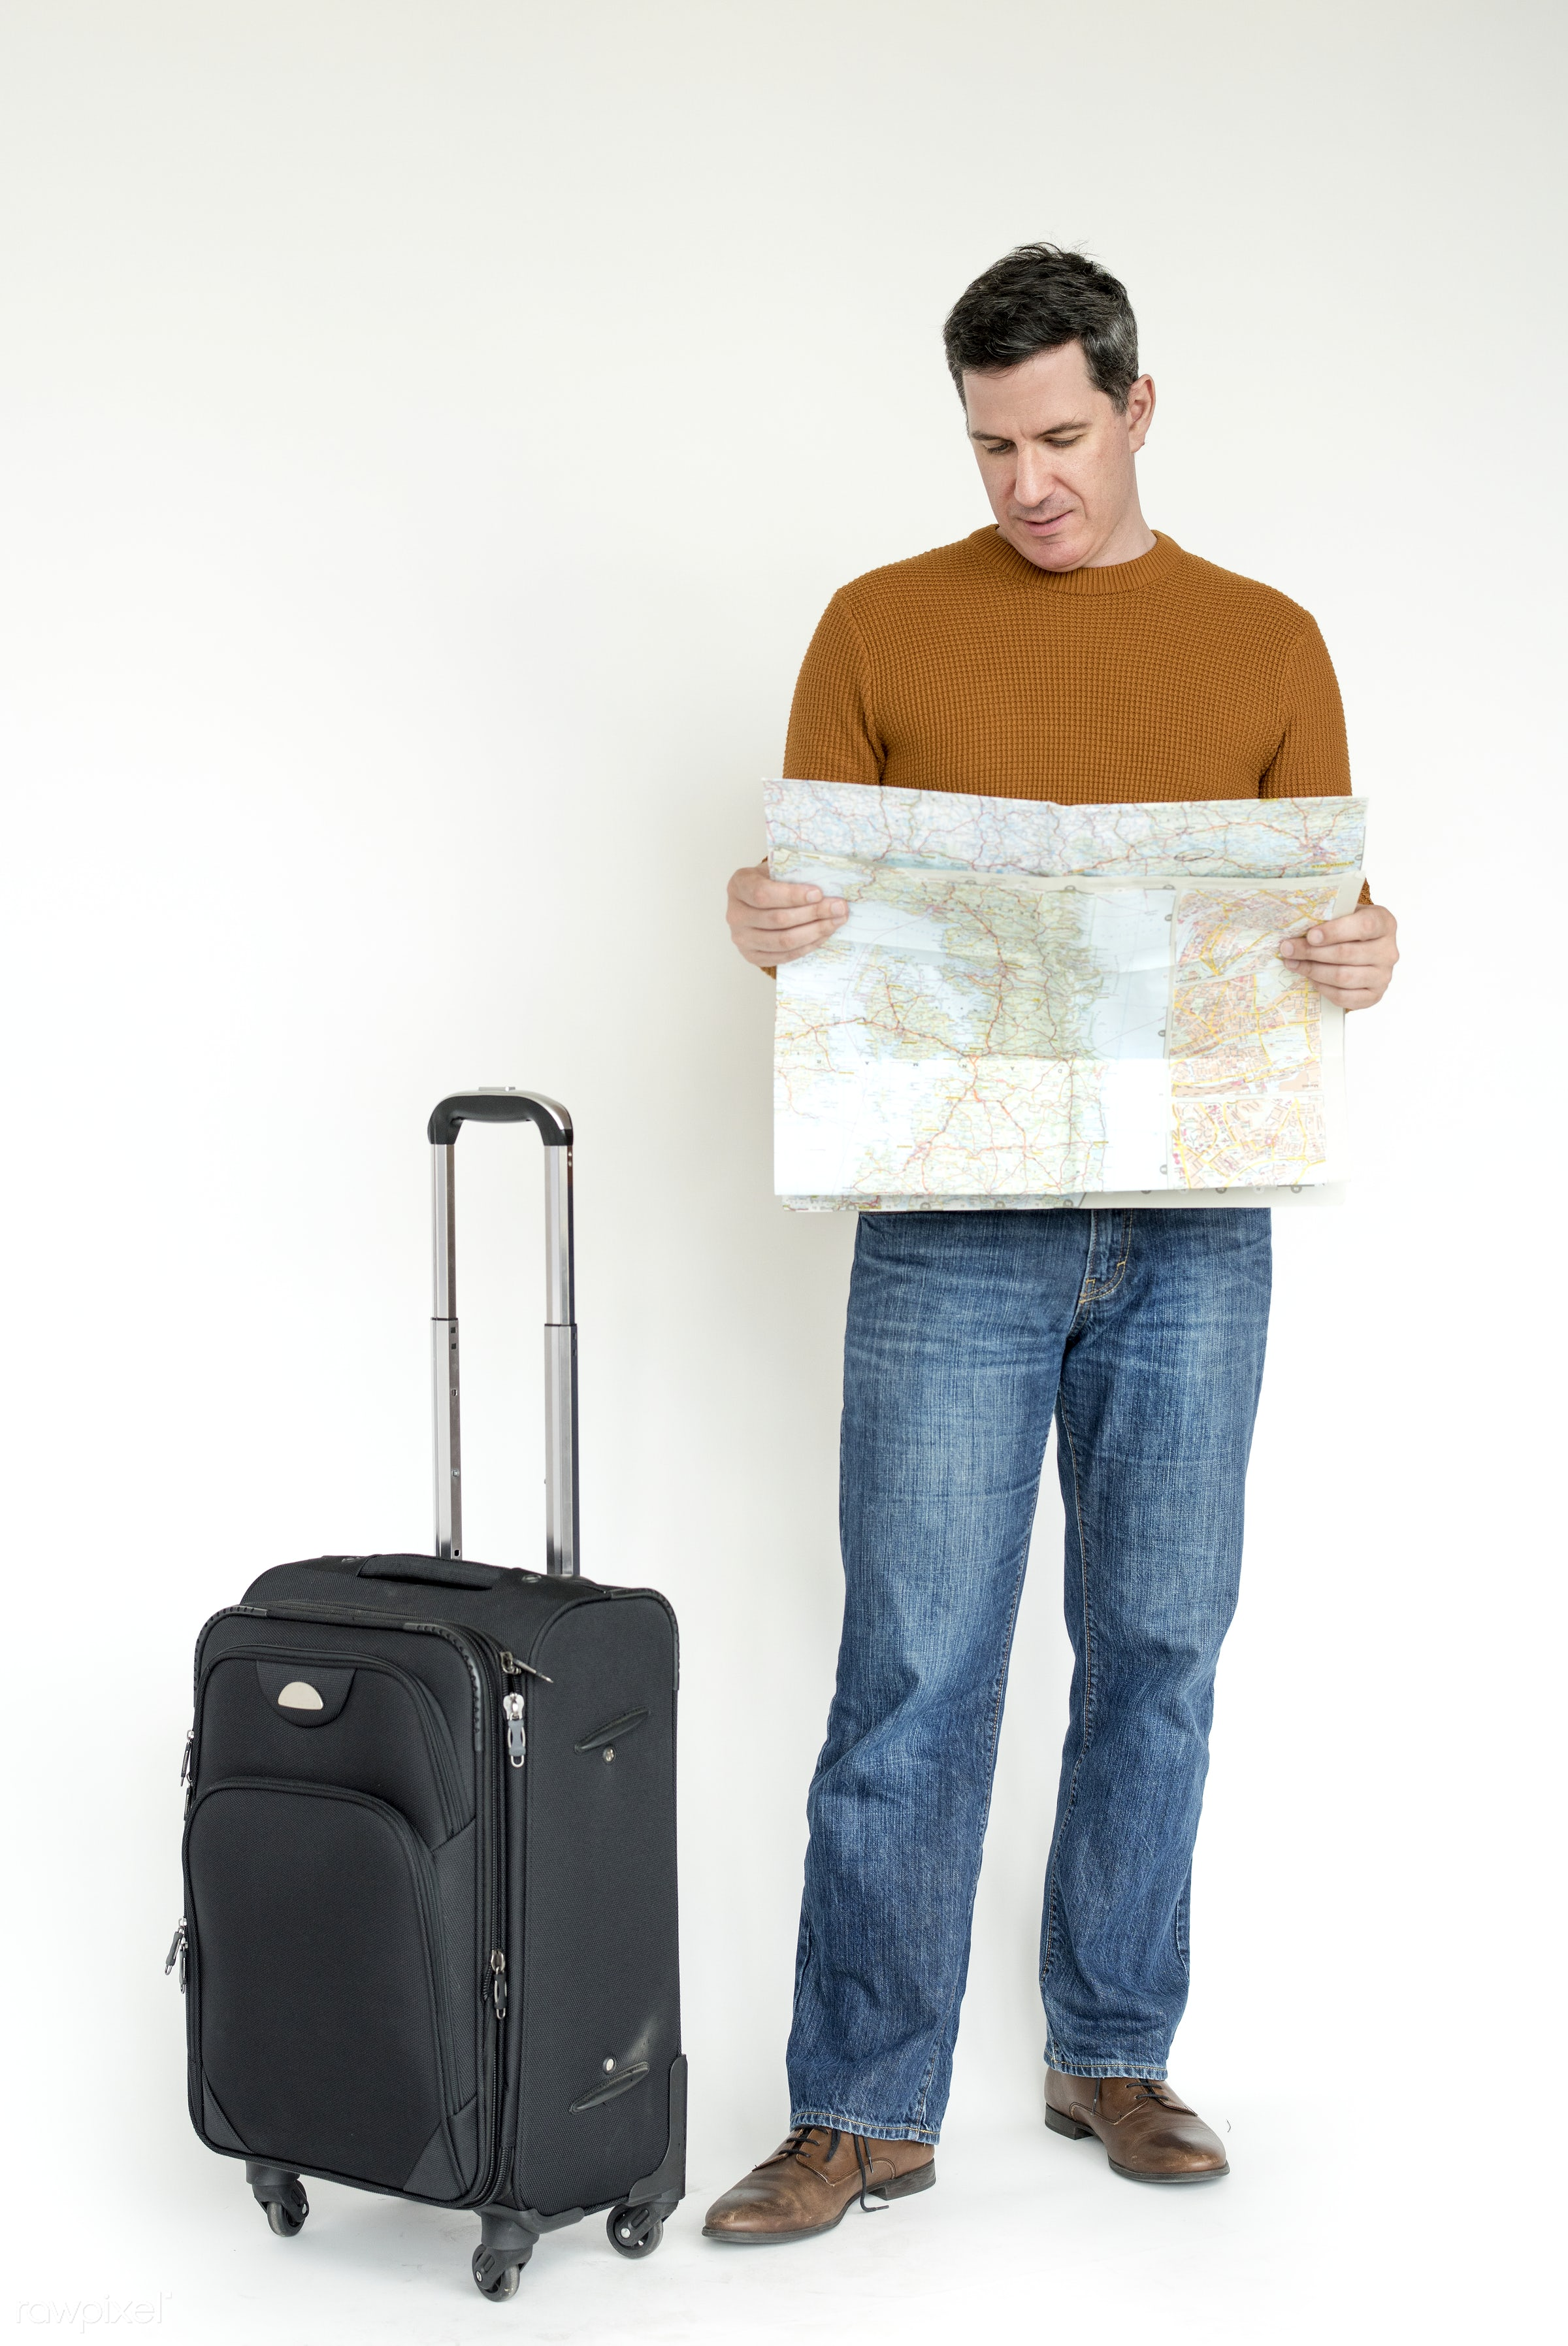 expression, studio, model, person, isolated on white, luggage, race, people, style, casual, lifestyle, map, men, man,...